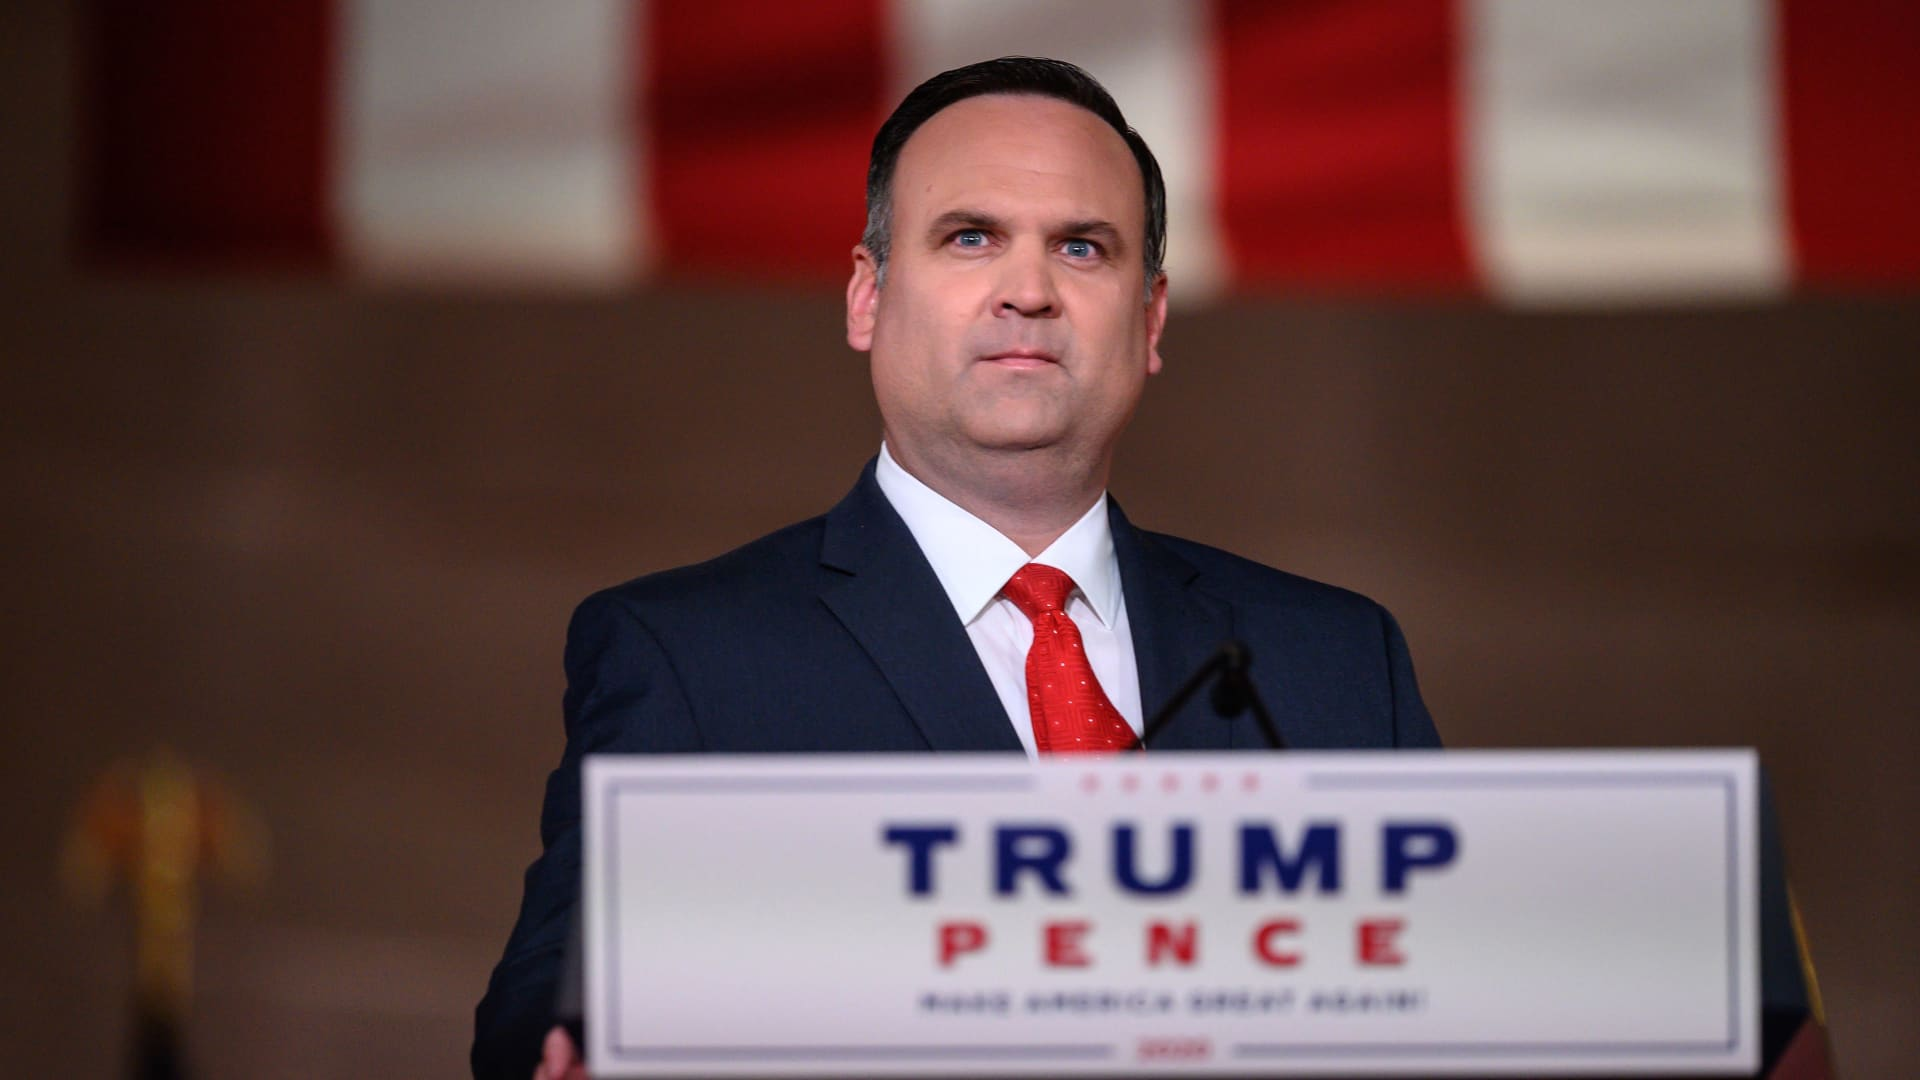 White House Deputy Chief of Staff for Communications Dan Scavino addresses the Republican National Convention in a pre-recorded speech at the Andrew W. Mellon Auditorium in Washington, DC, on August 26, 2020.